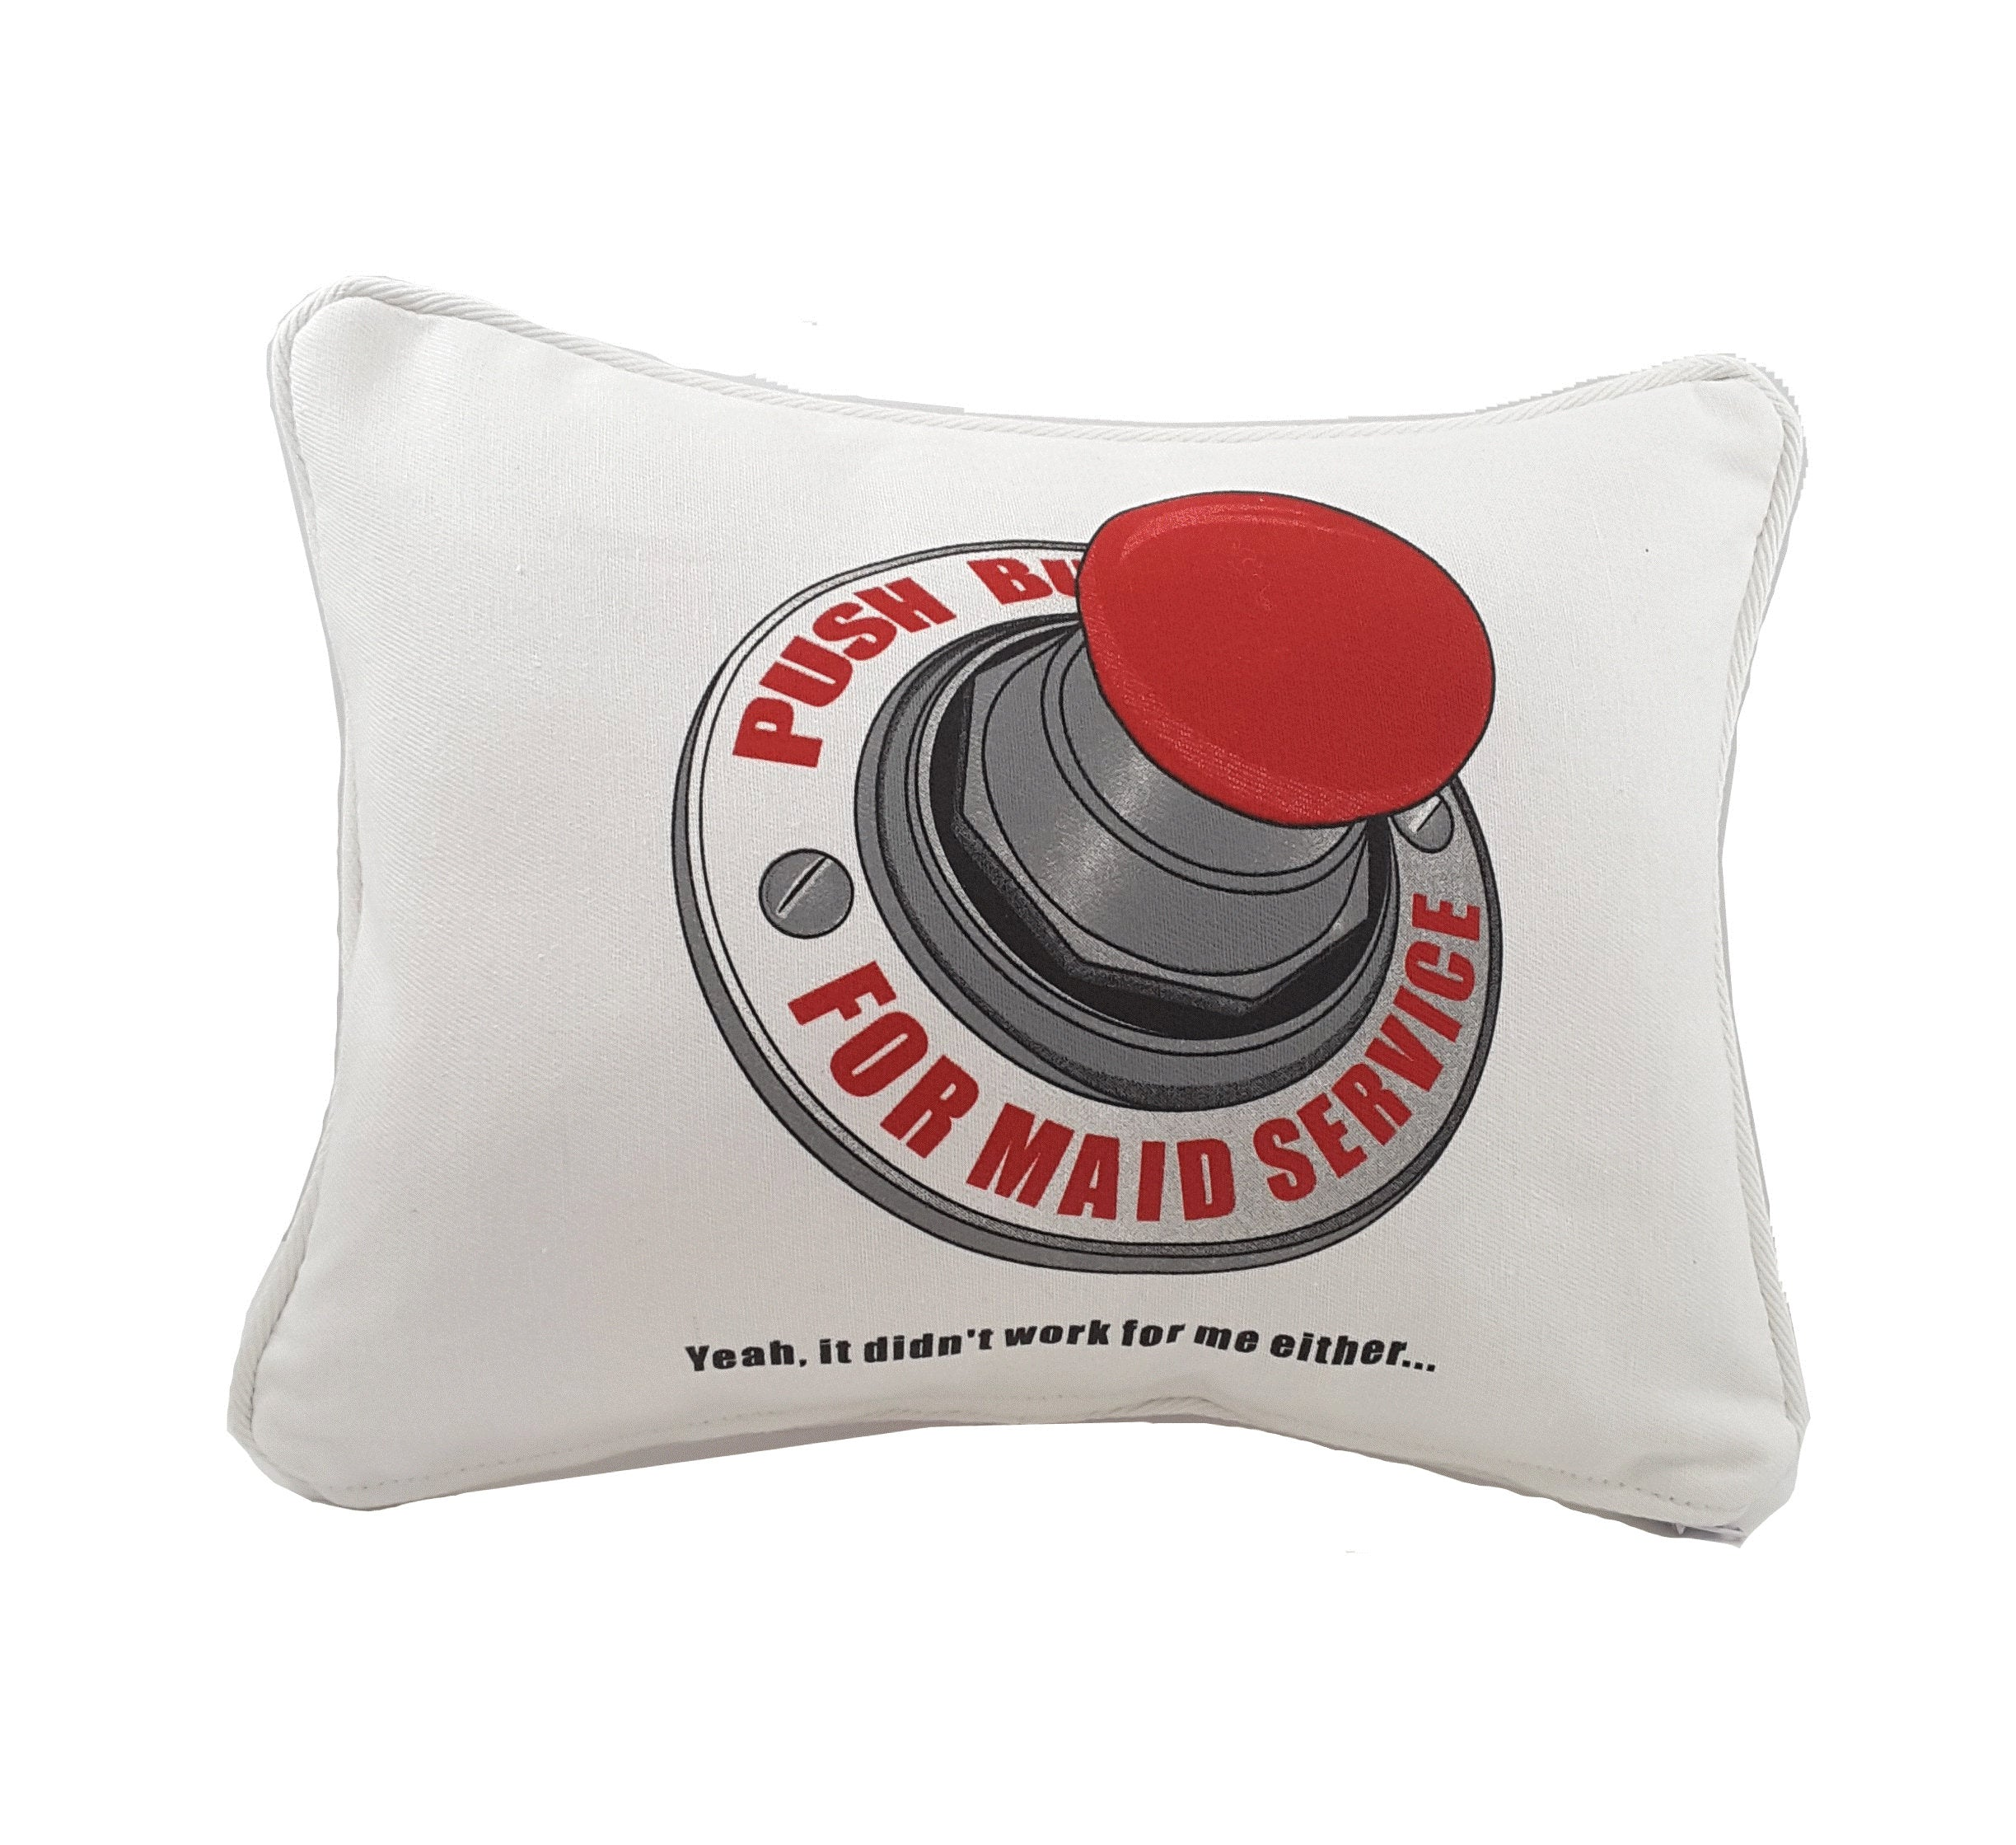 Funny Push Button for Maid Service Pillow - TheLastWordBish.com